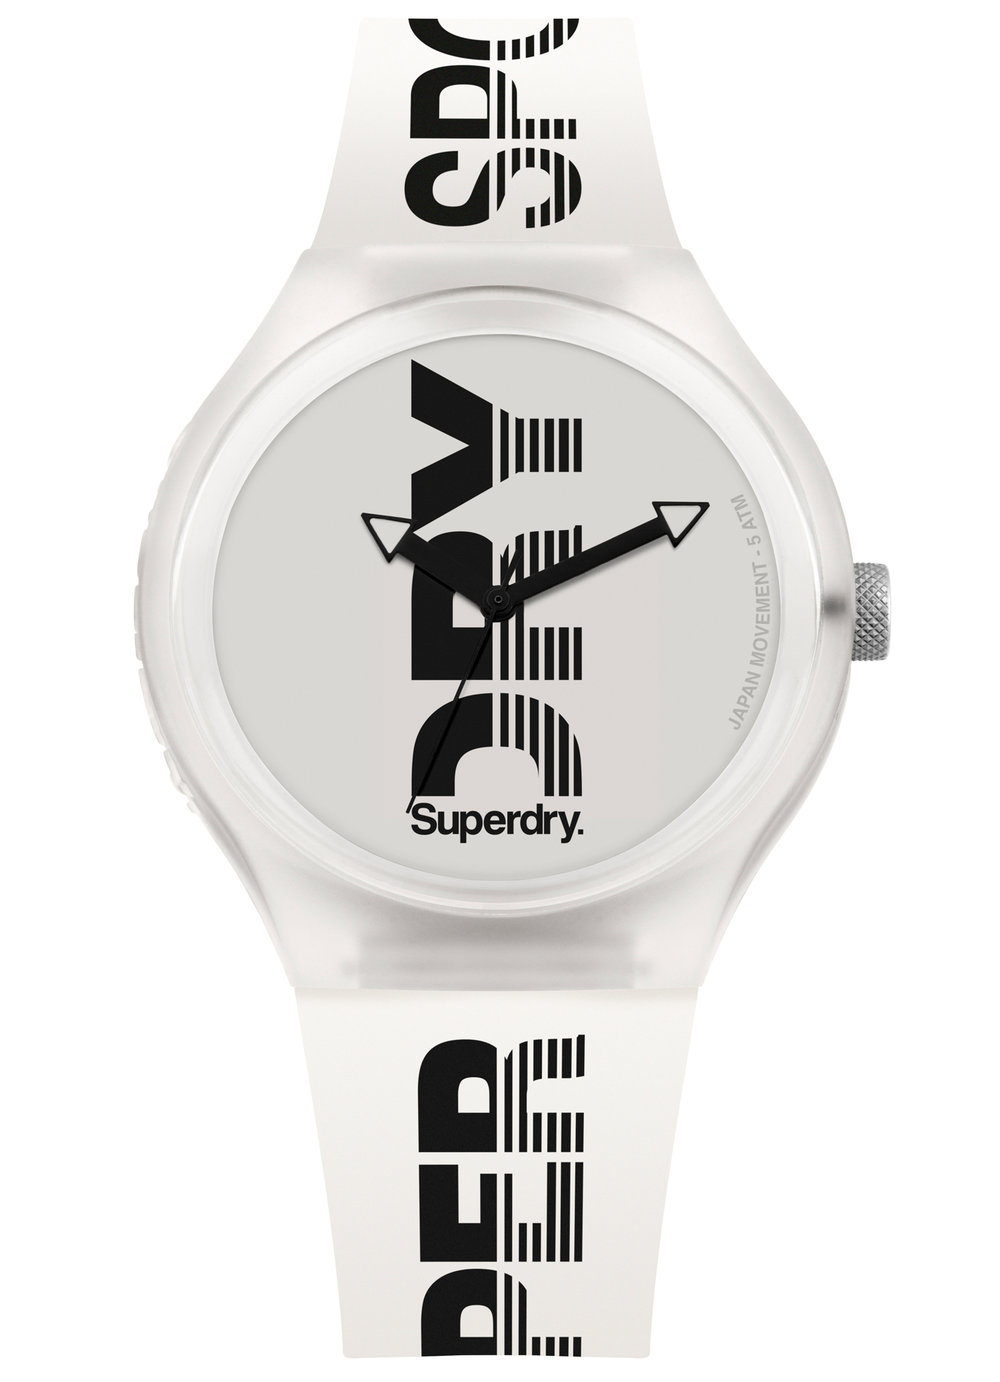 superdry_watches_SDSYG189W.jpg